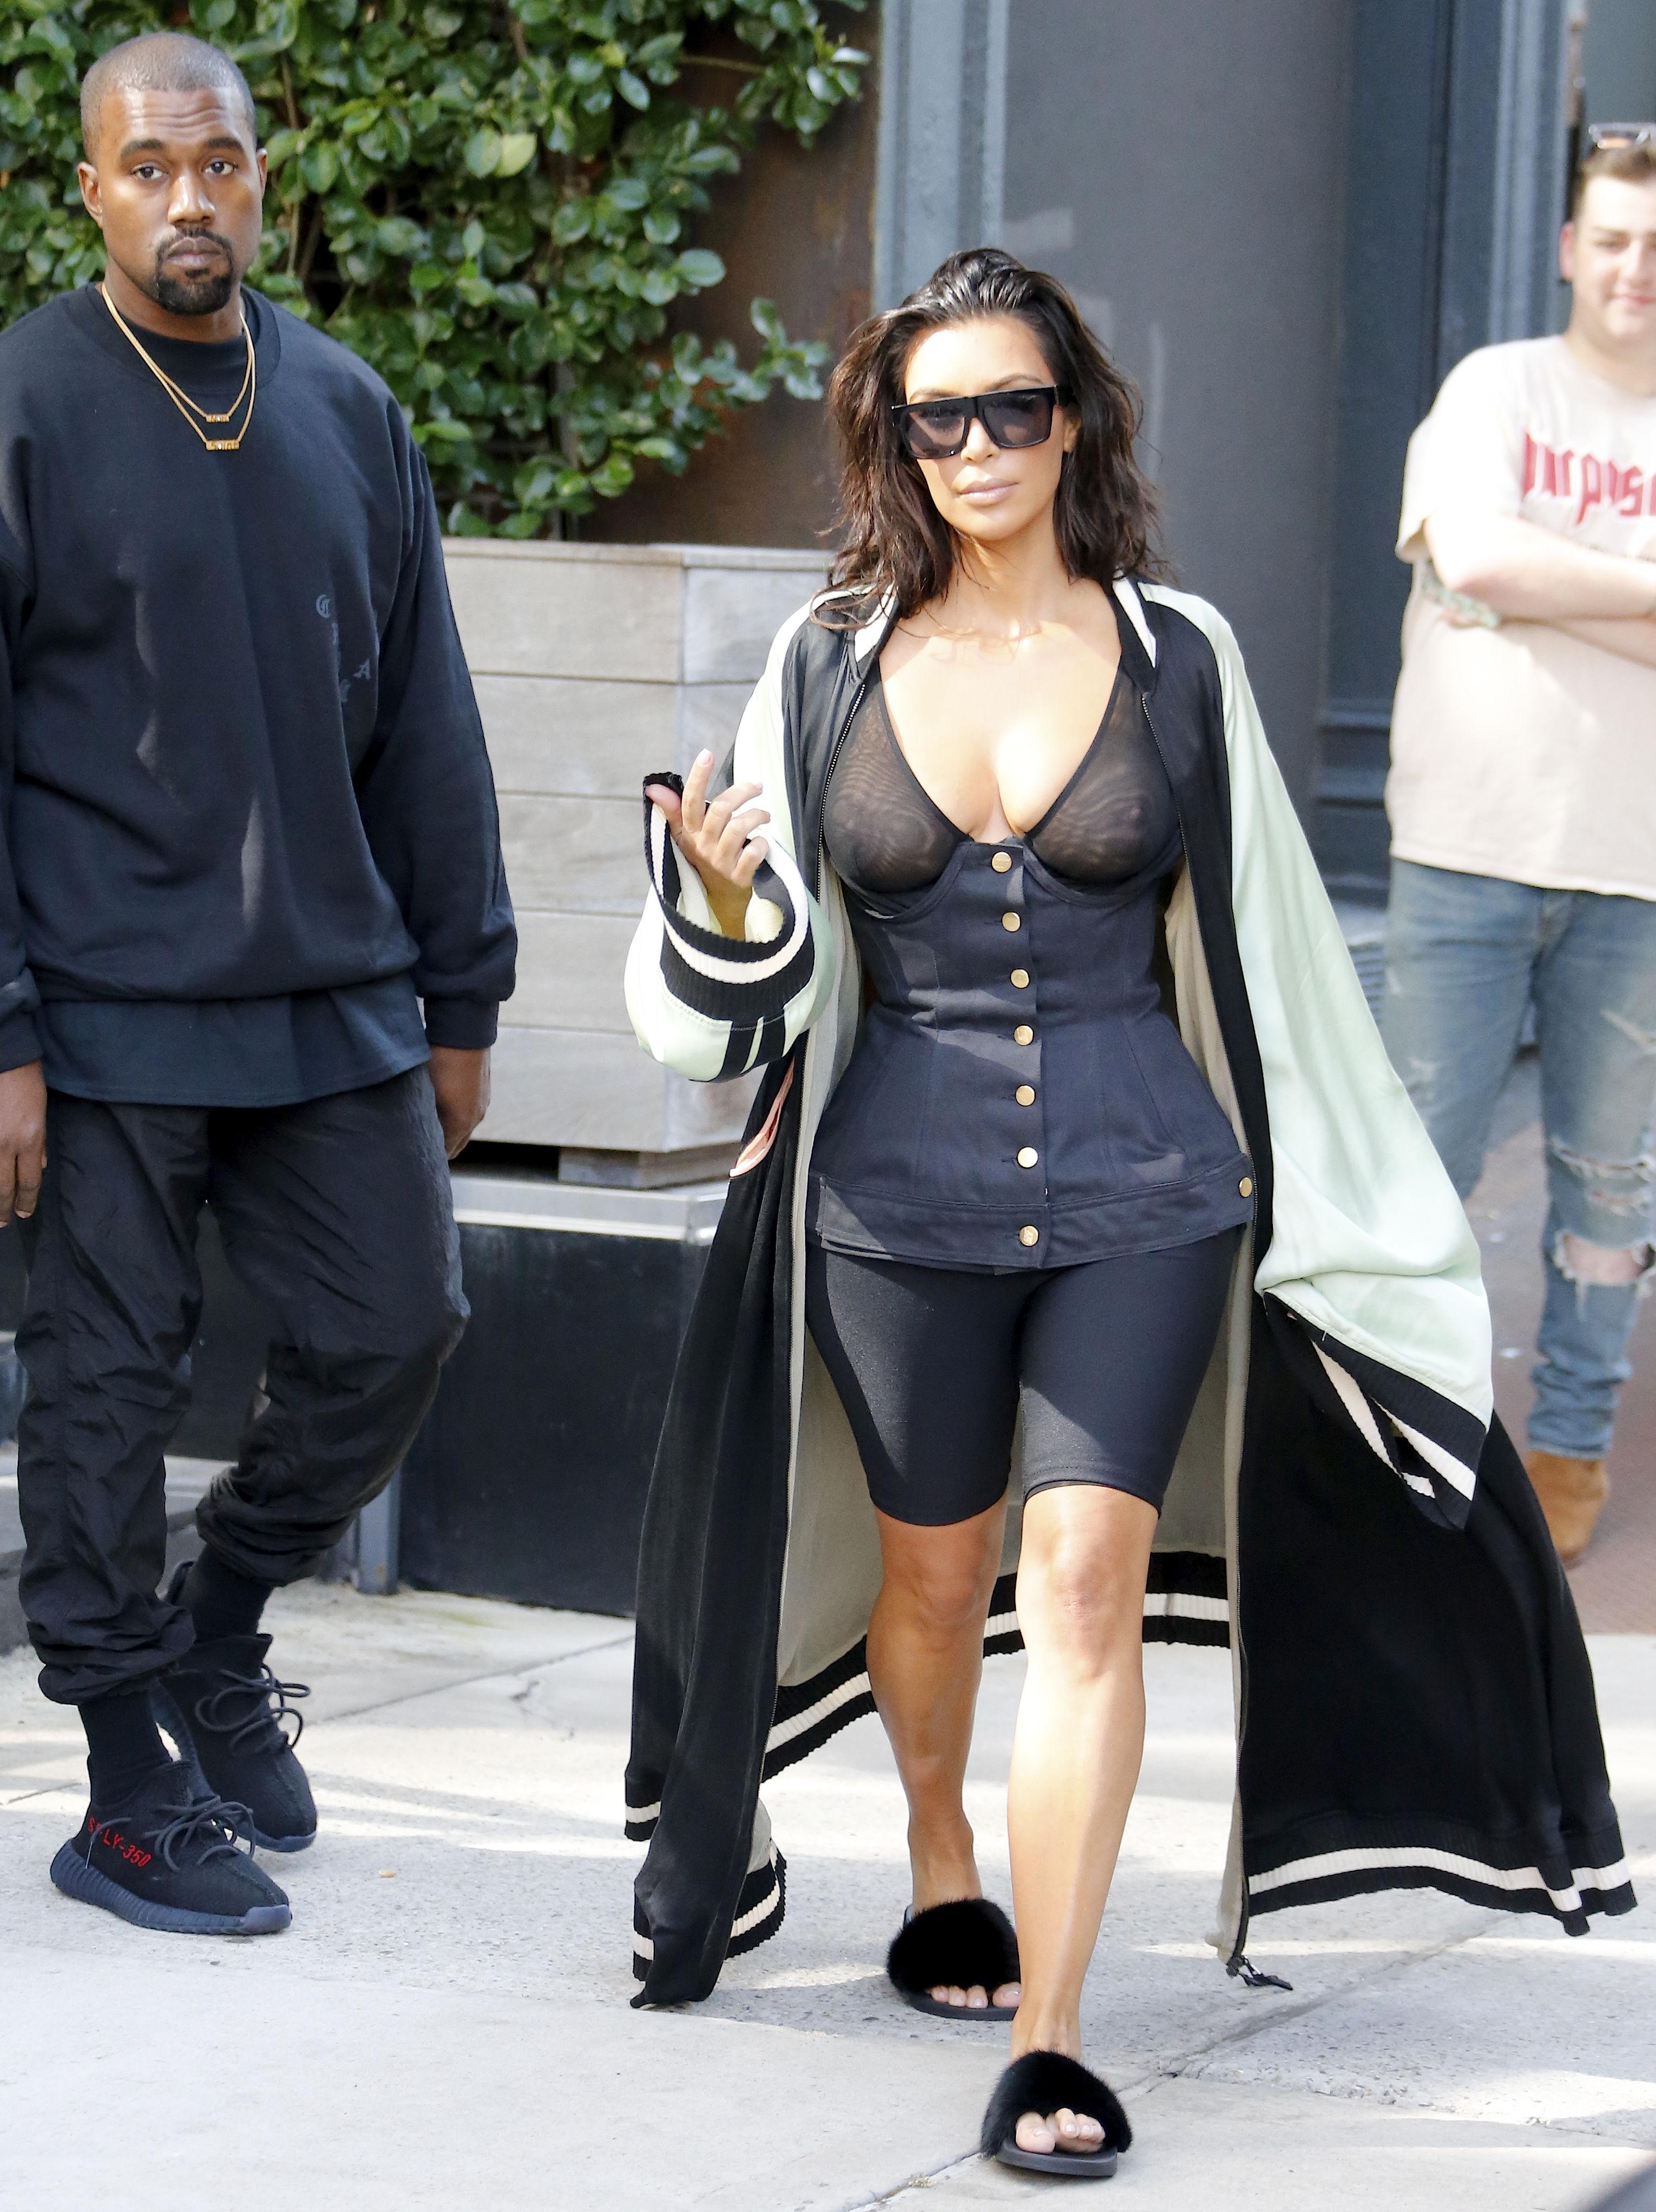 What the Fug: Kim Kardashian In Some Wretched Piece of Sludge or Other